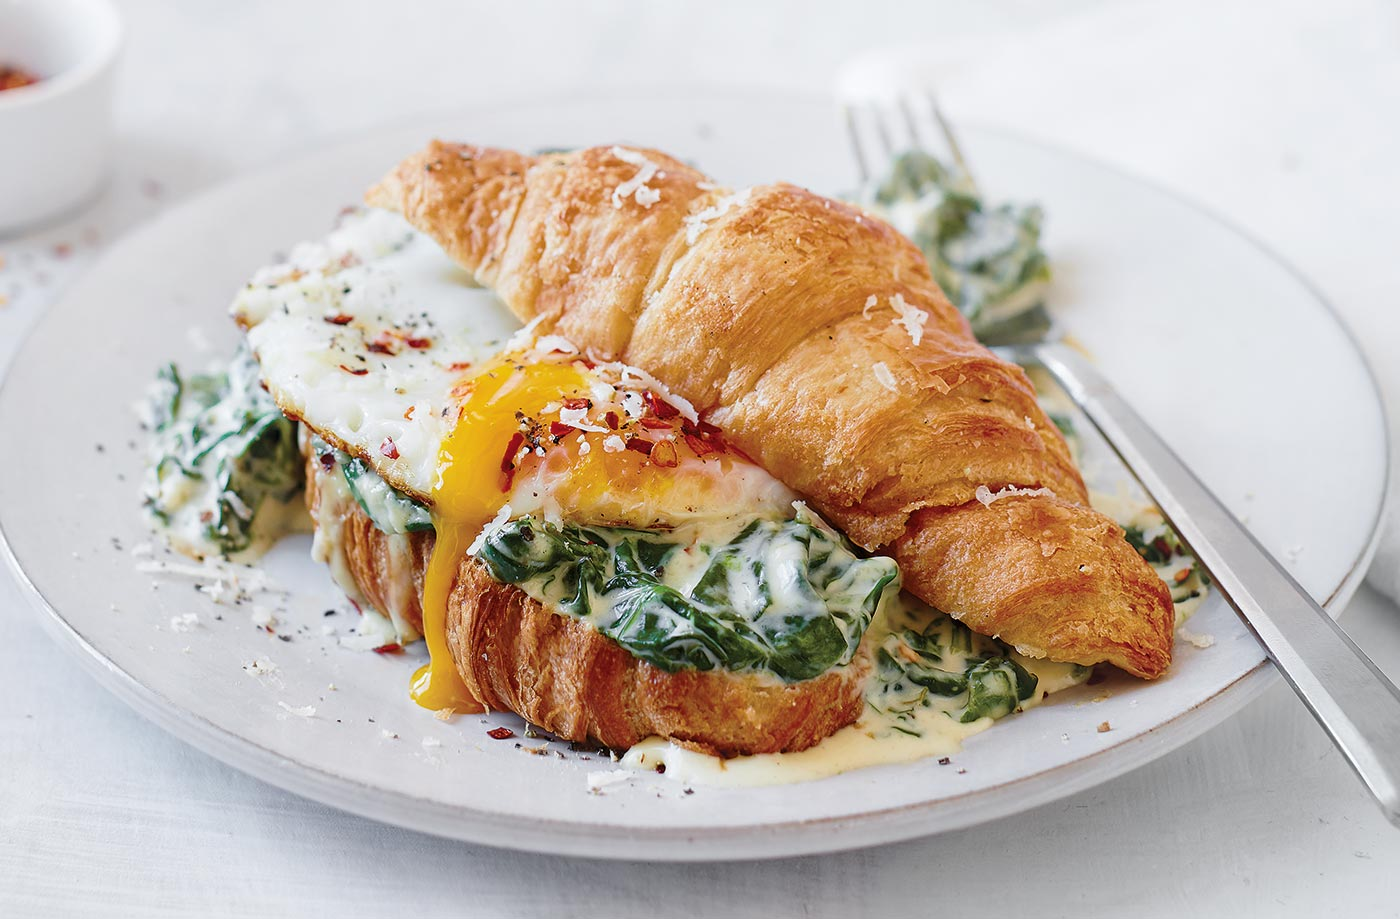 Creamy spinach and Parmesan croissant recipe